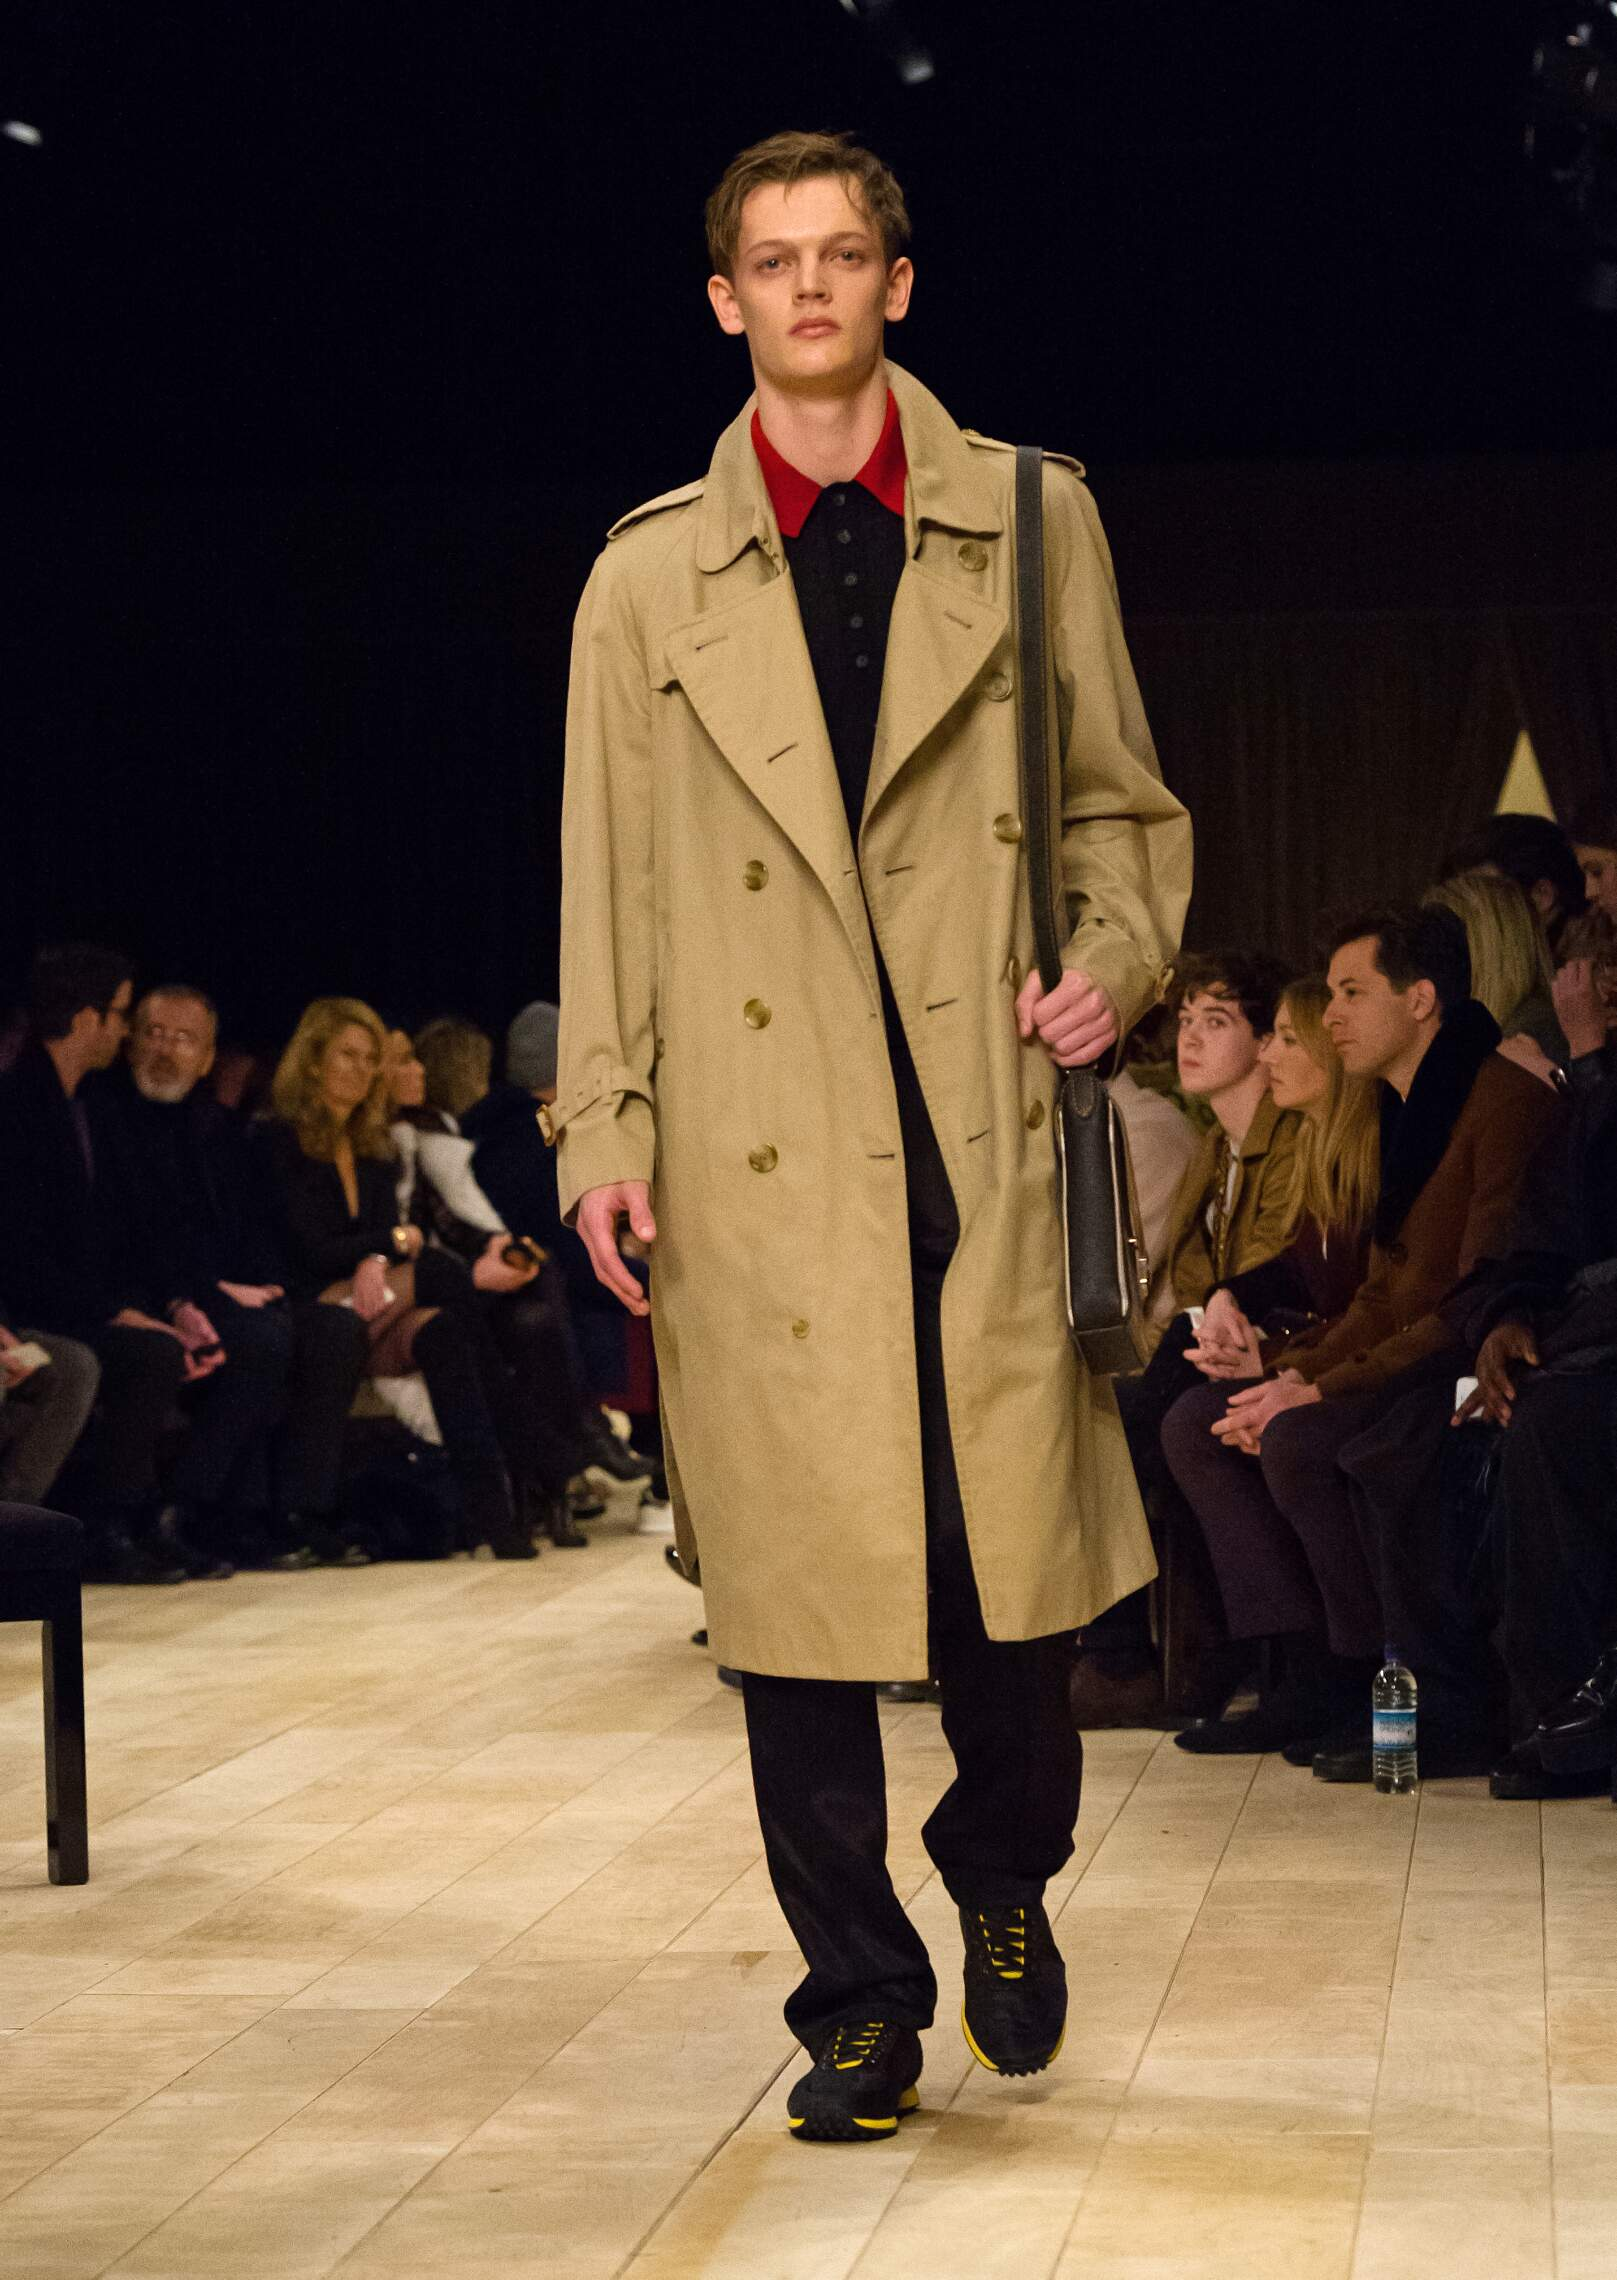 Fashion Man Model Burberry Catwalk